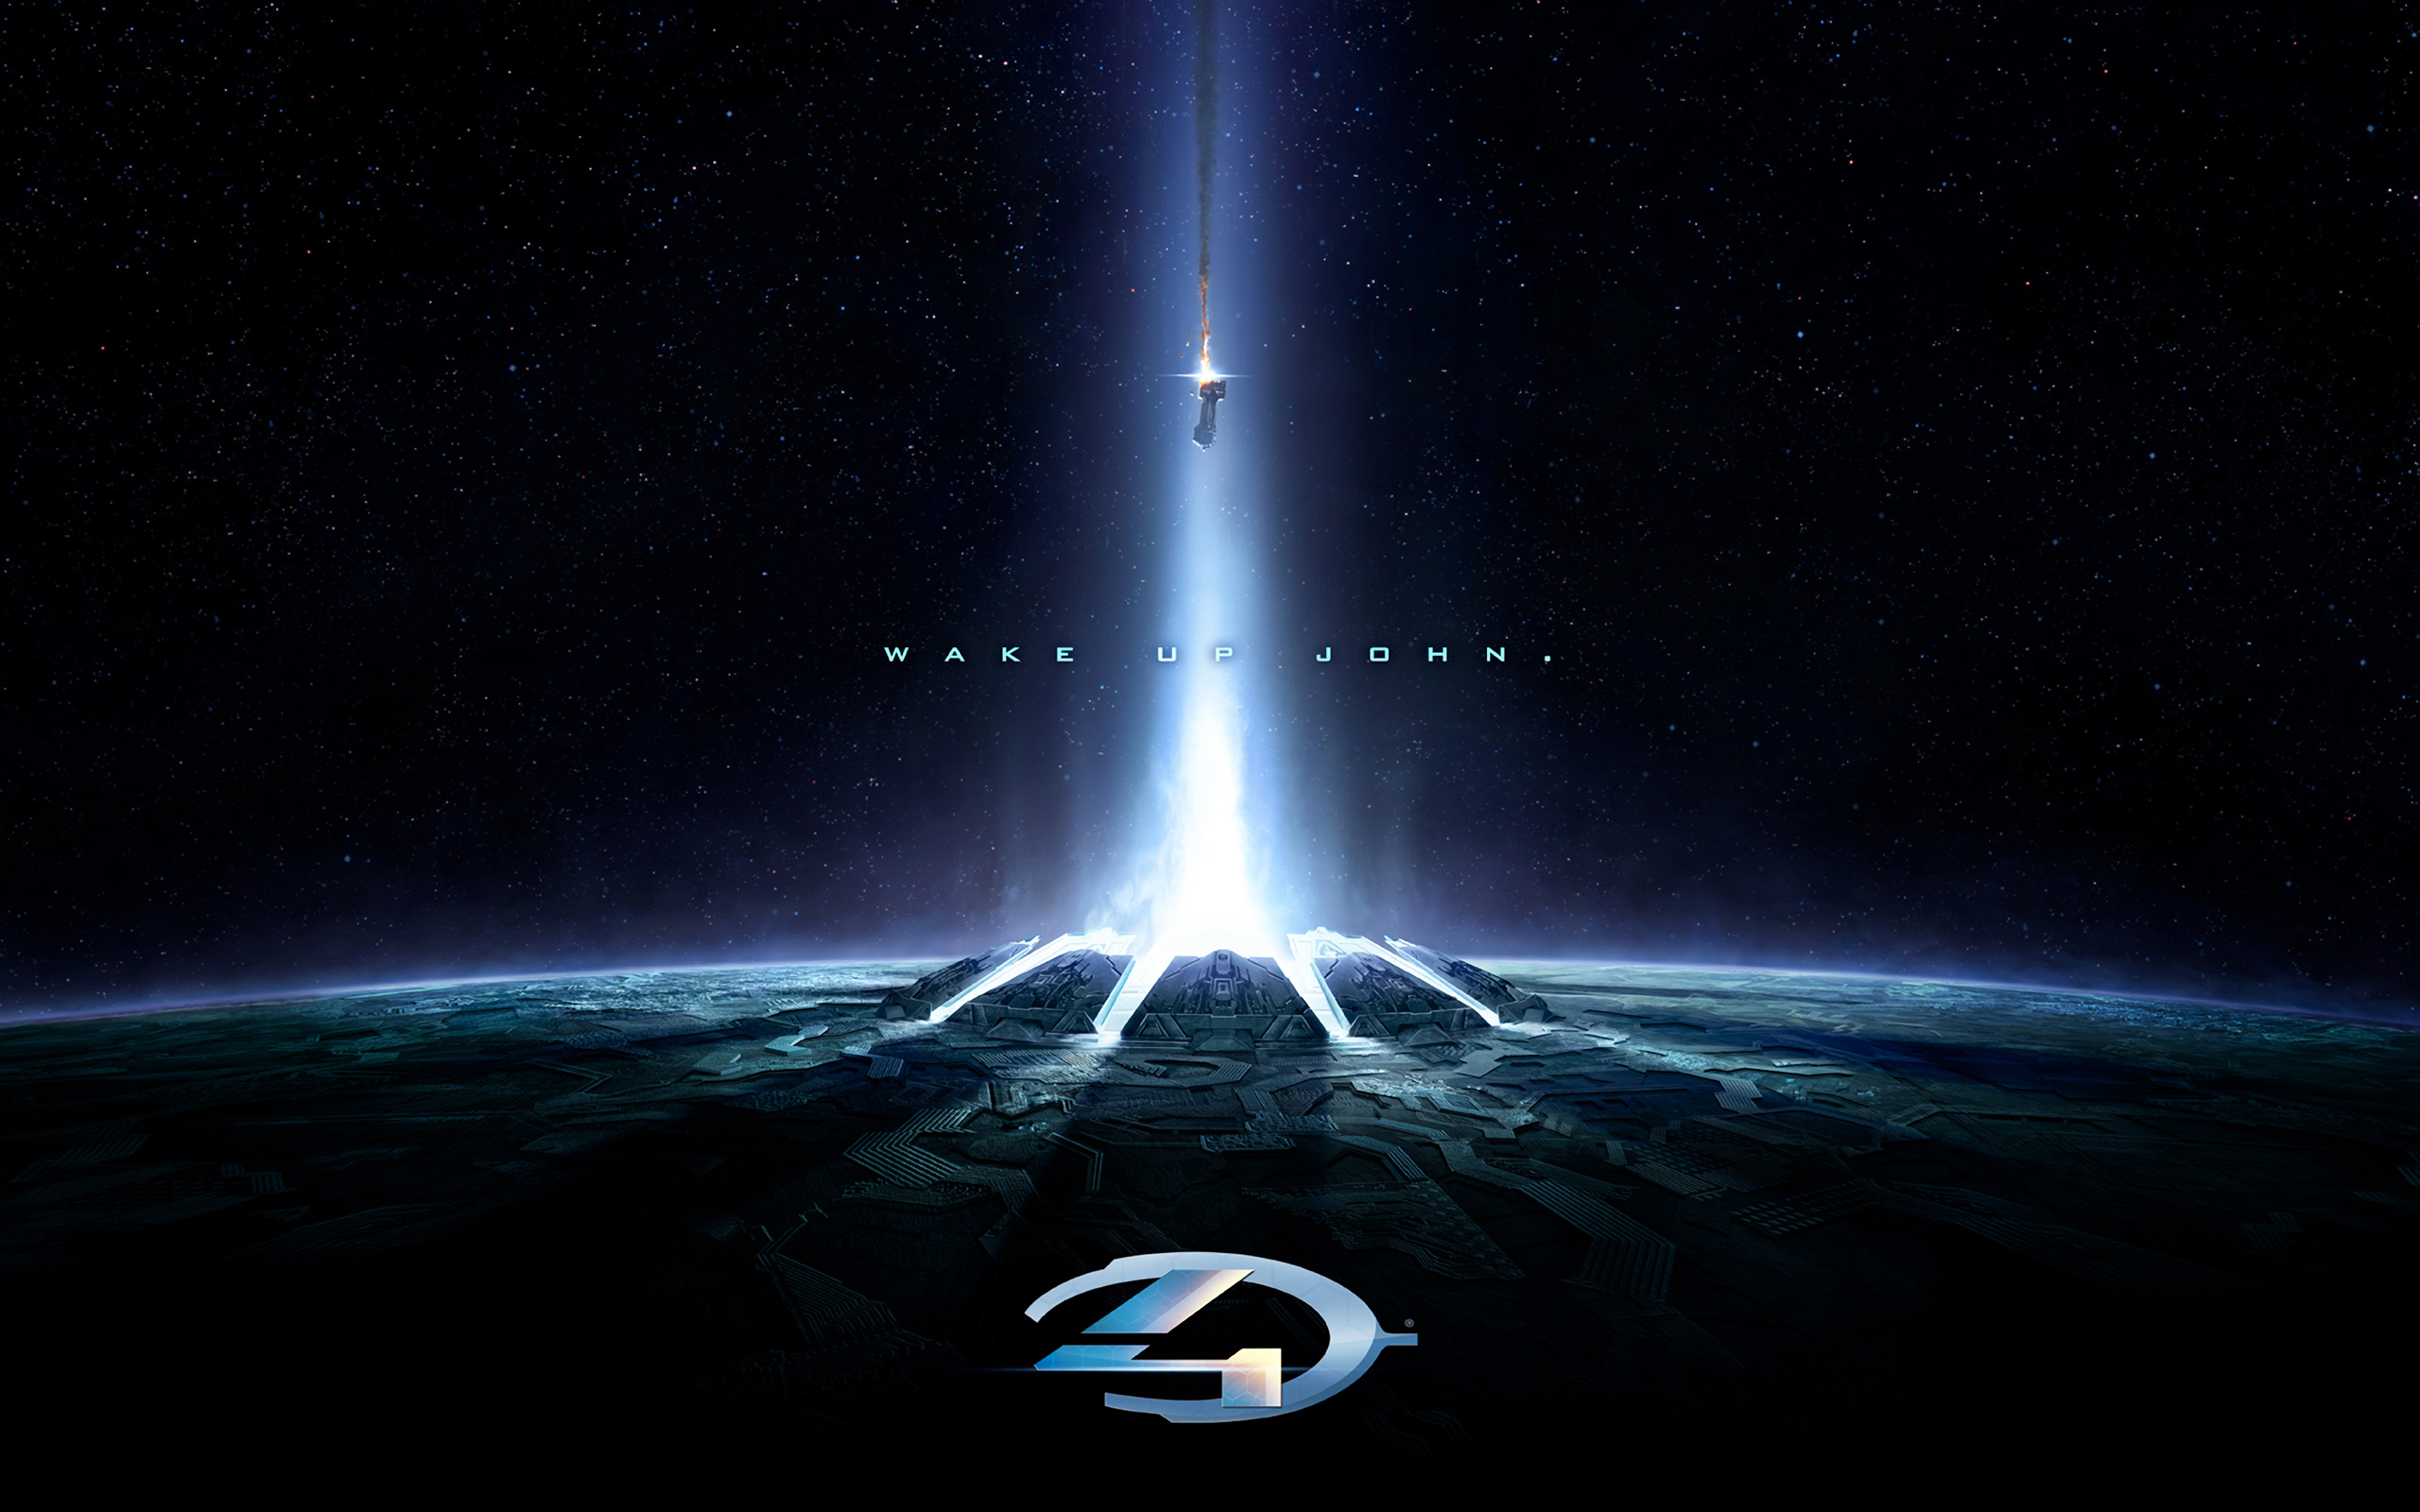 Halo 4 2012 Wallpapers HD Wallpapers 2560x1600